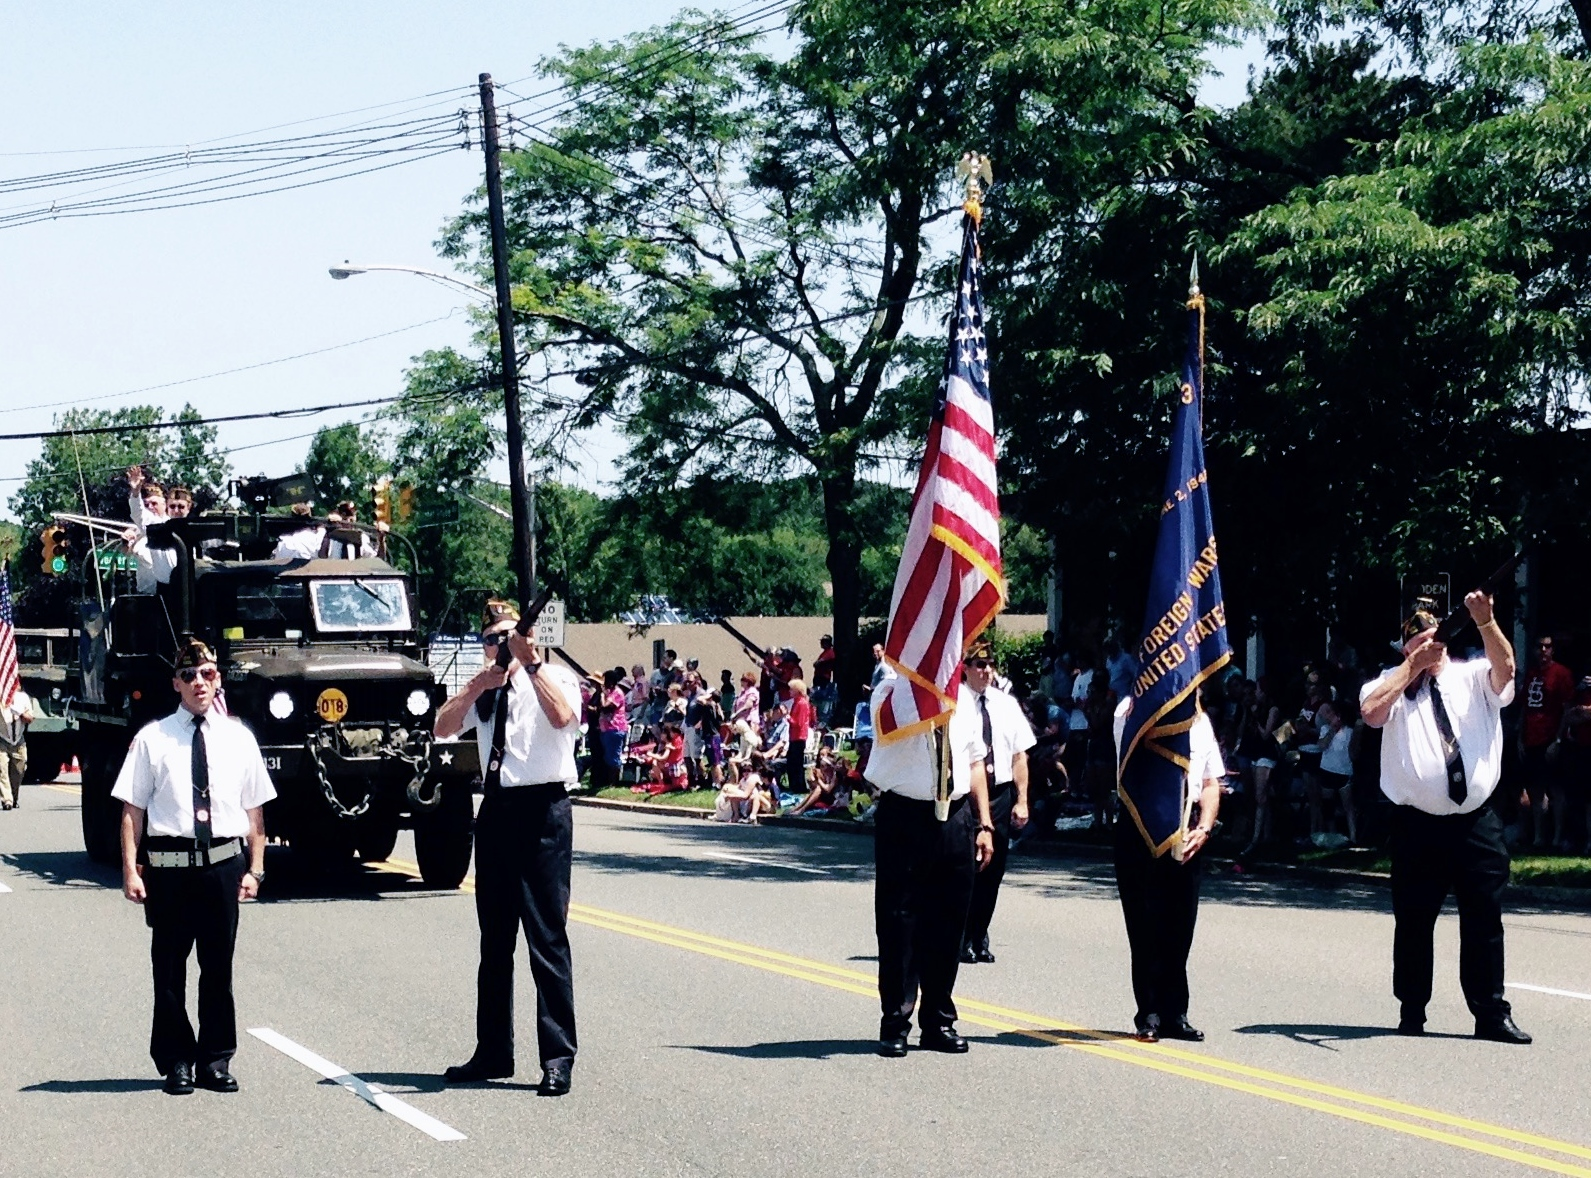 2015 Fourth of July Parade - Scott, Jack and Randy, with flag bearers Emerson & Angel and Riflemen Len & Dan.